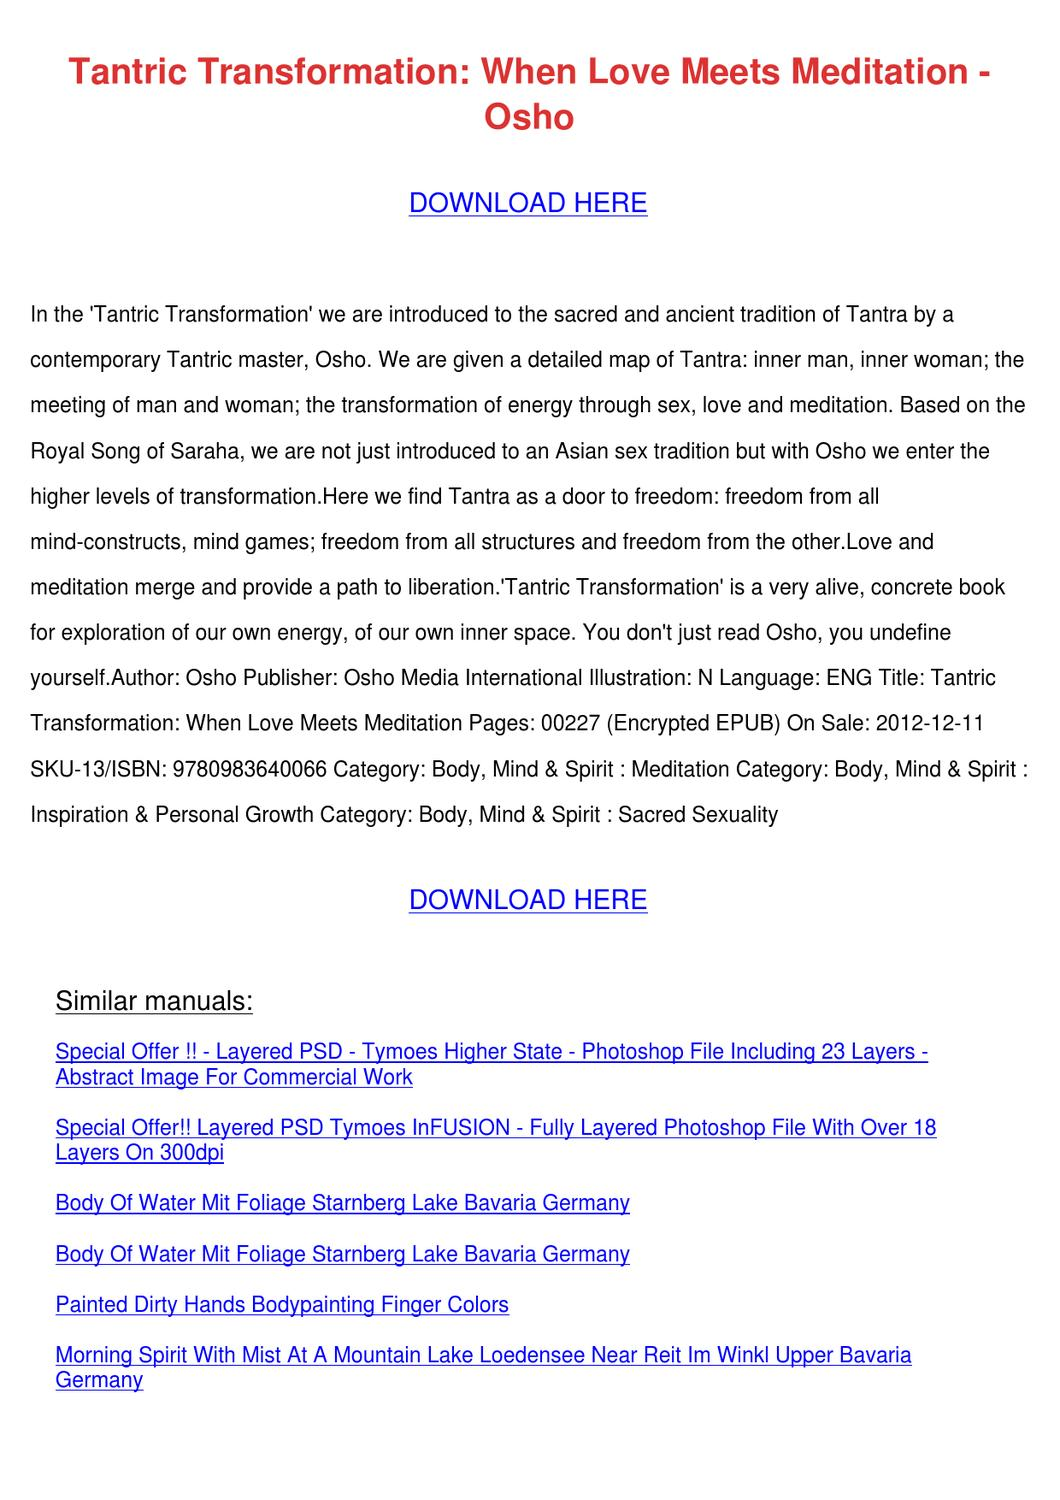 Tantric Transformation When Love Meets Medita By Tinastack Issuu